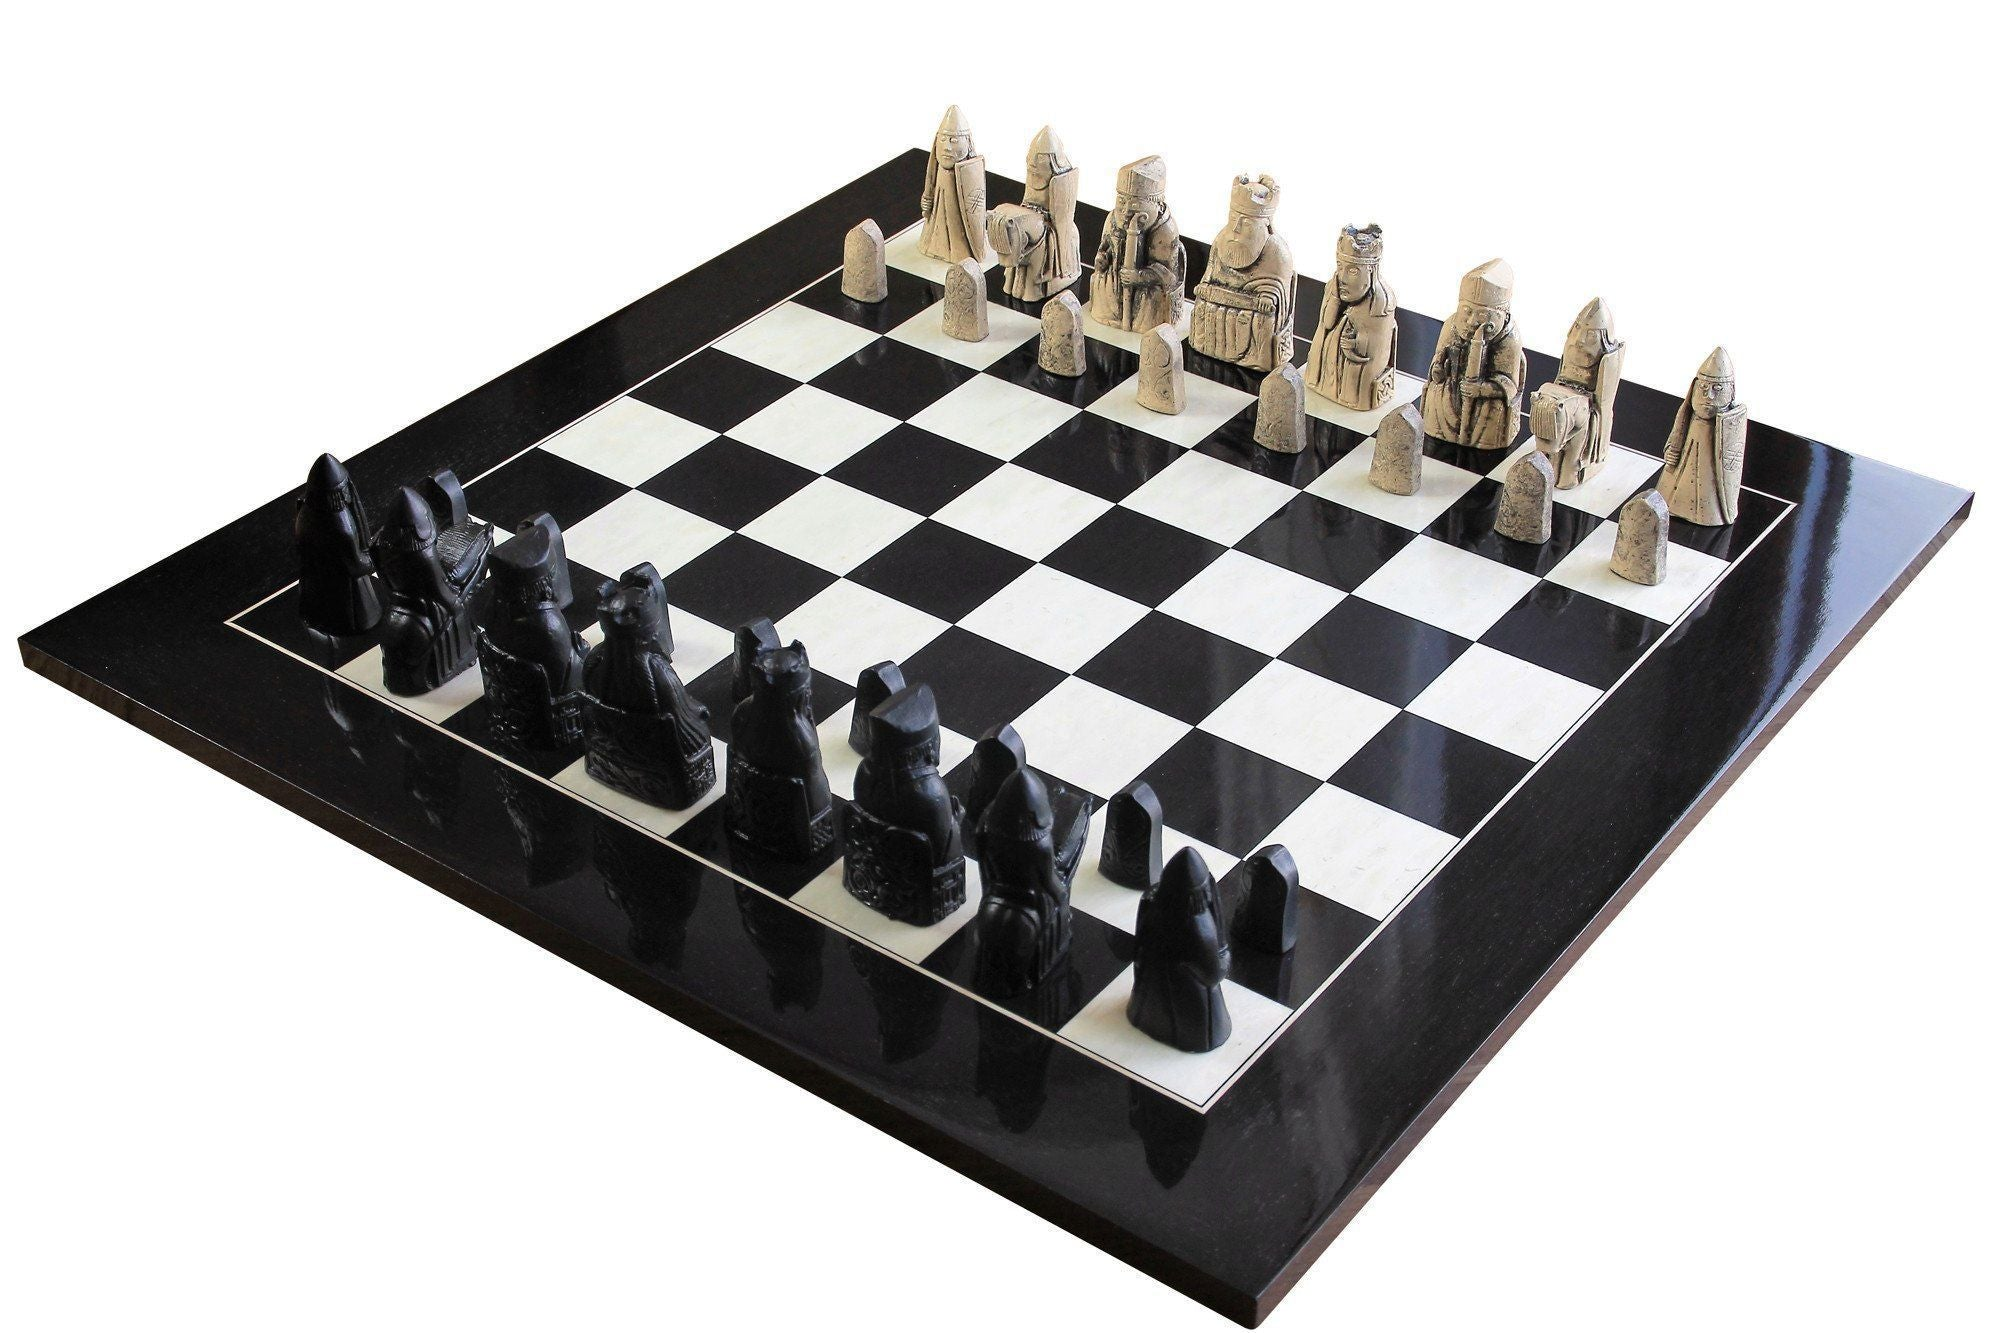 Isle of Lewis Luxury Anegre High Gloss Chess Set - Official Staunton™ Chess Company